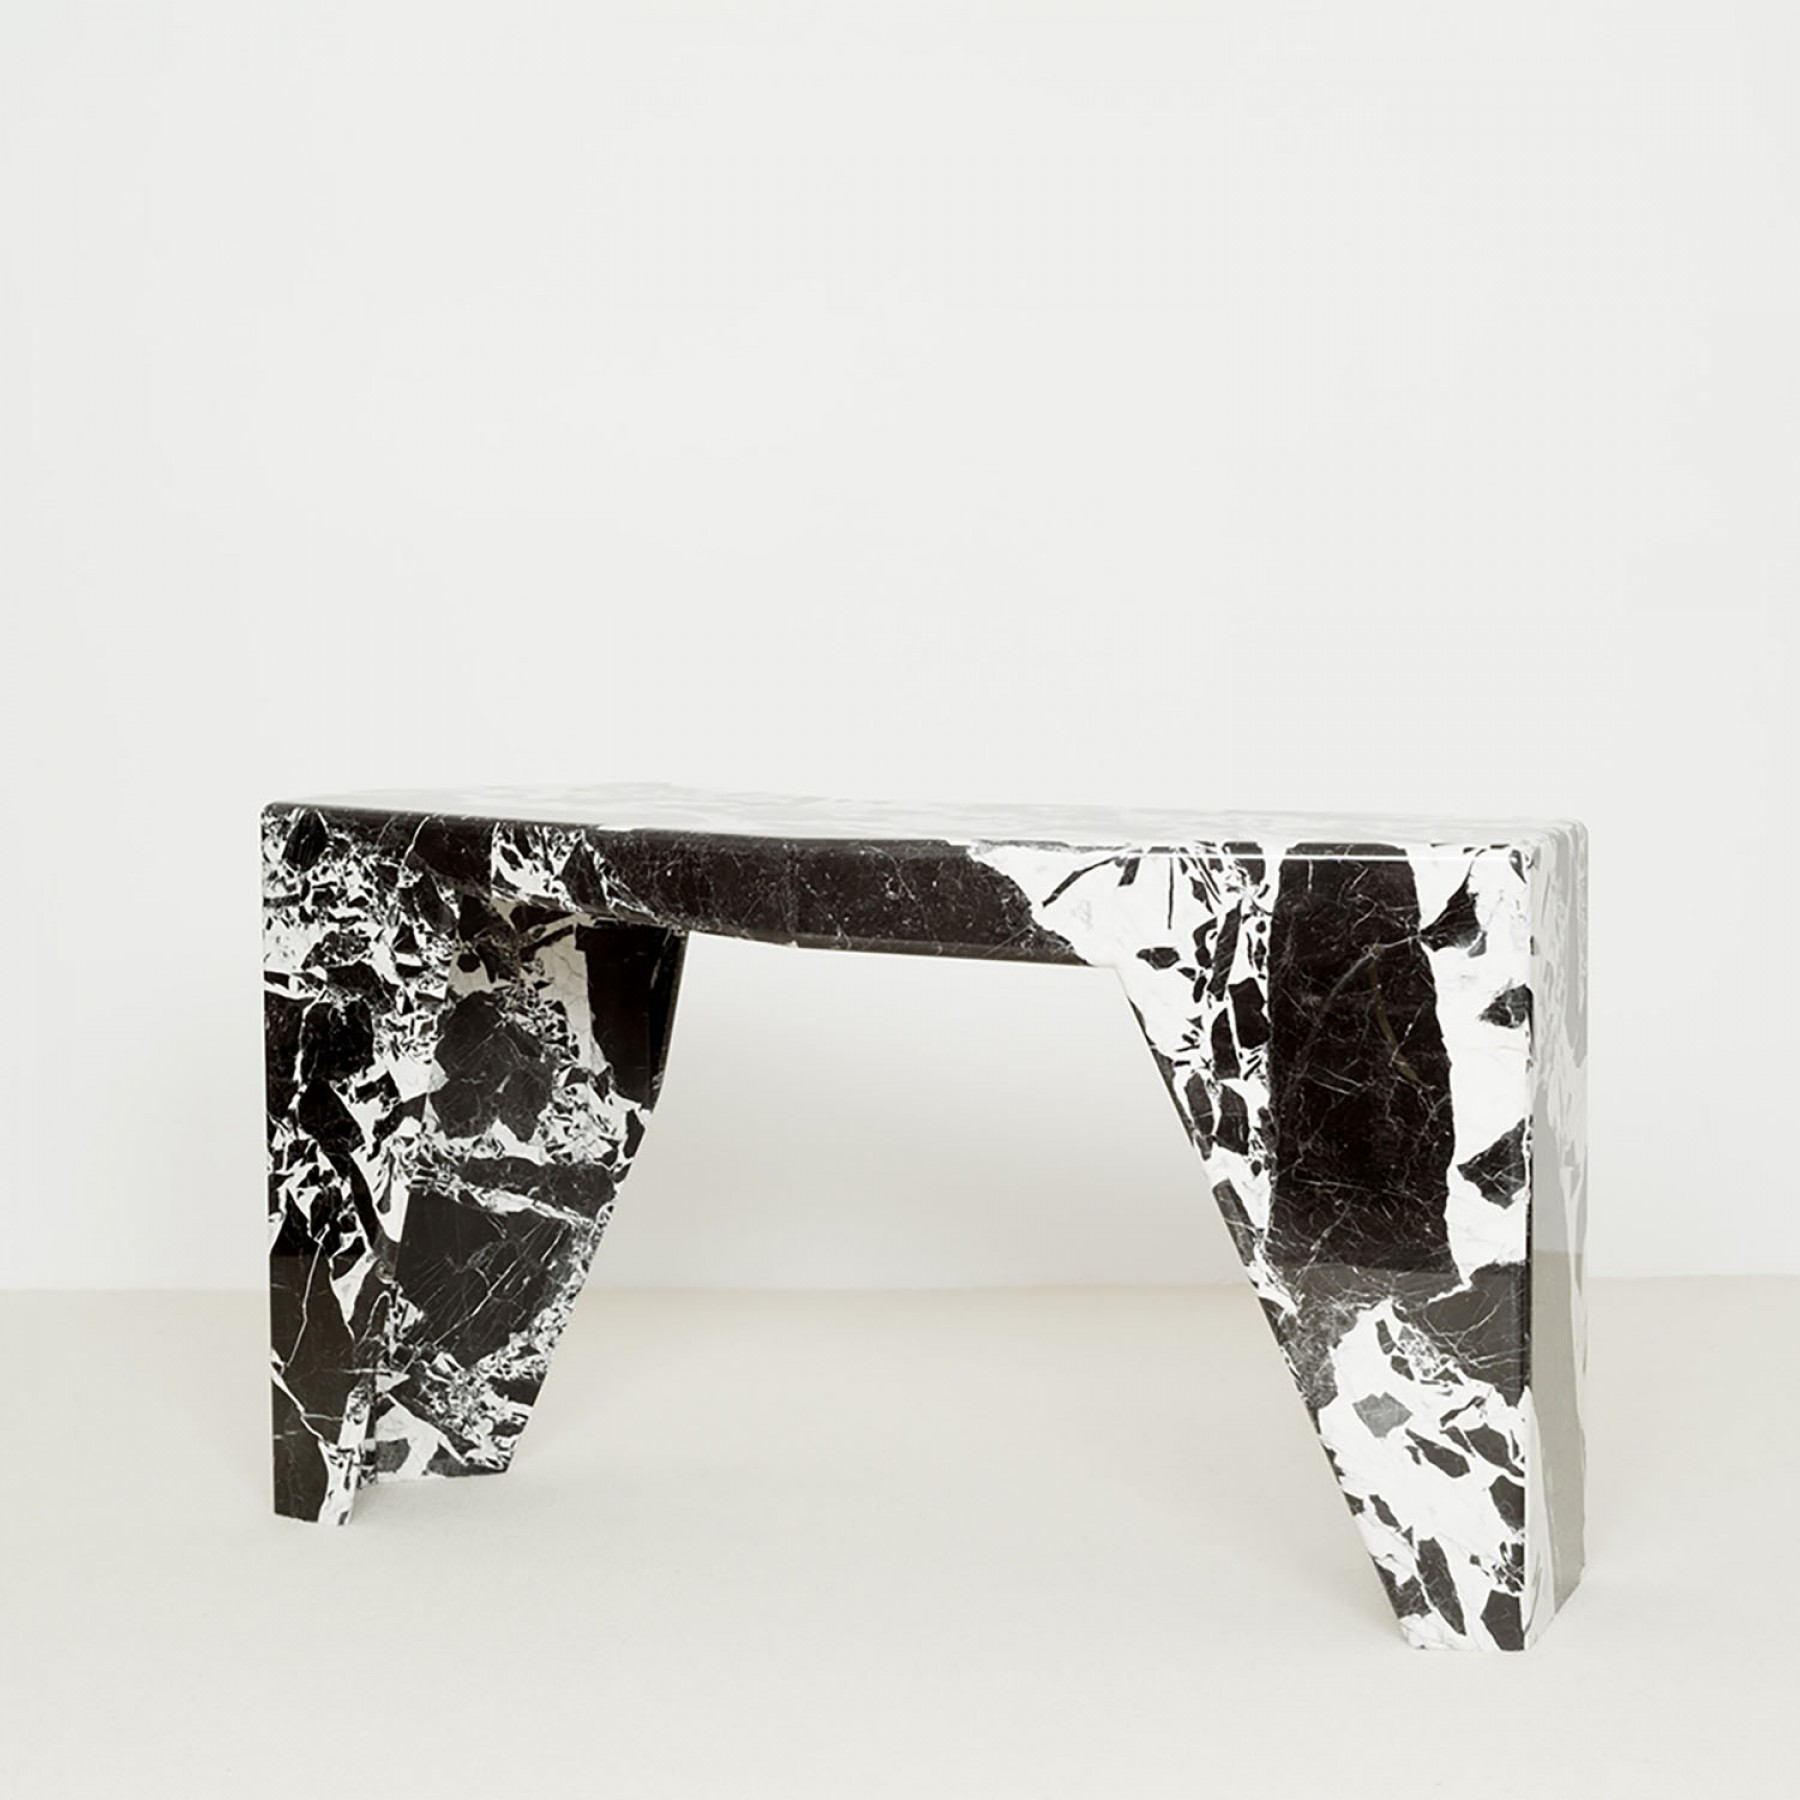 Jaz: Console in marble. Design by Christophe Delcourt.